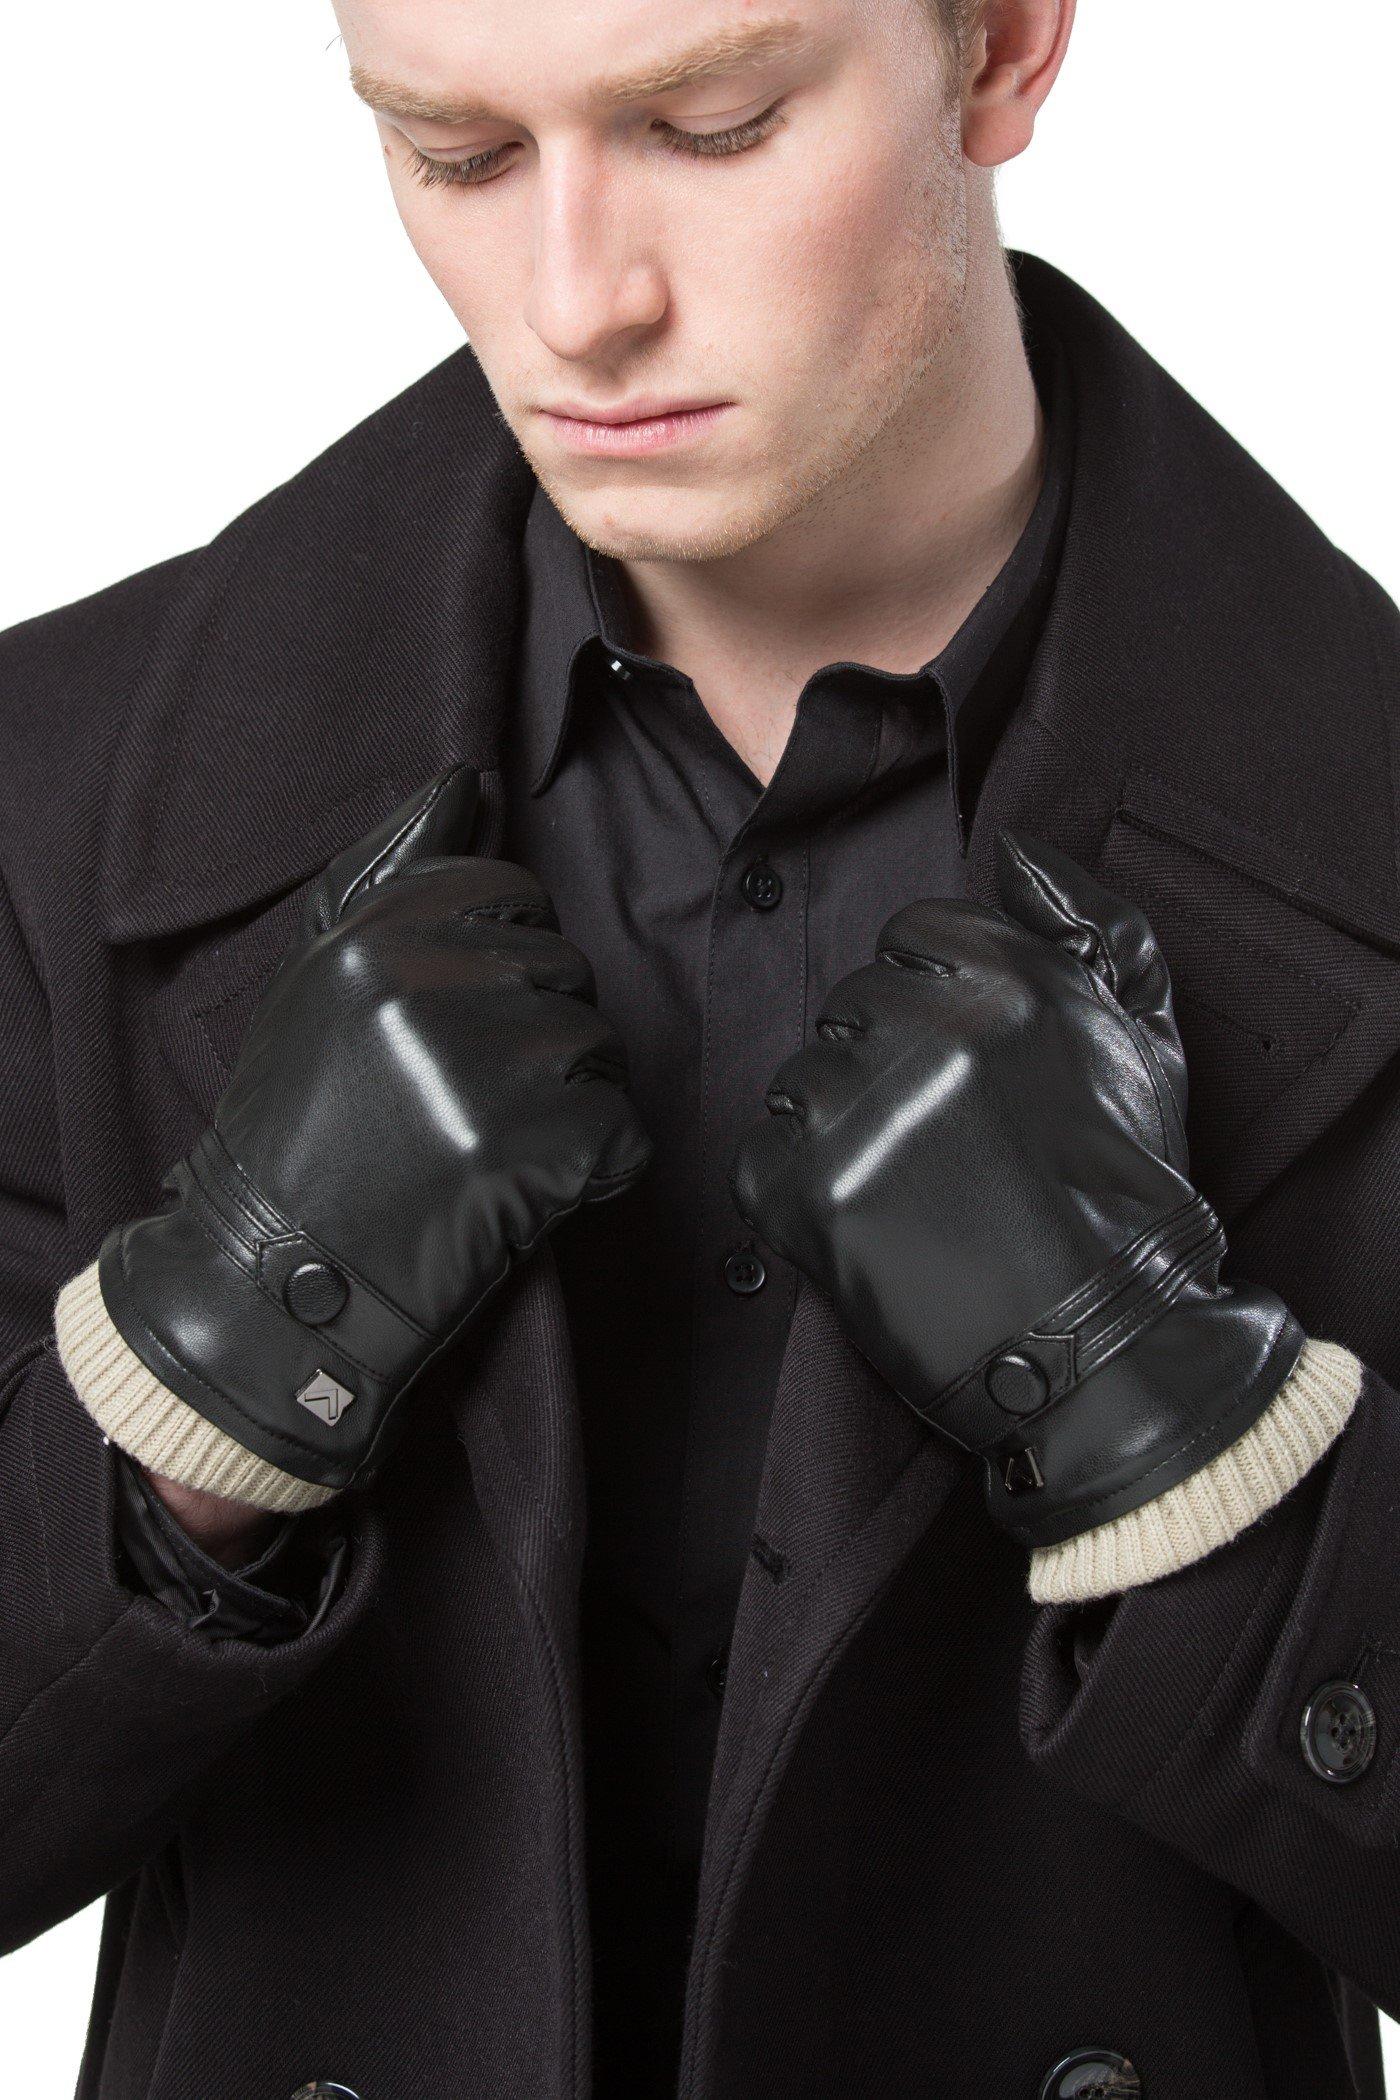 Gallery Seven Mens Faux Leather Warm Winter Gloves - Touch Screen Texting Glove - Gift Wrapped - Black Fine Button Style - Small by Gallery Seven (Image #1)